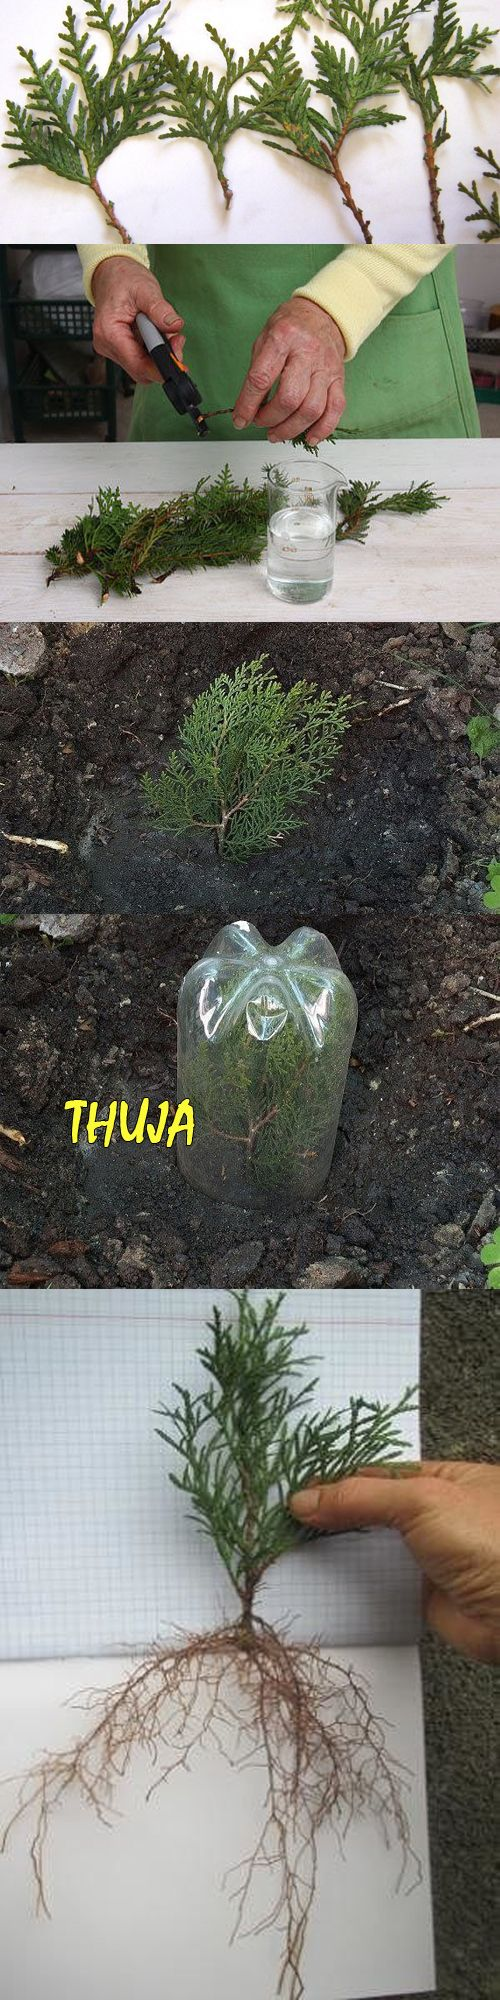 Thuja grow from twigs easily